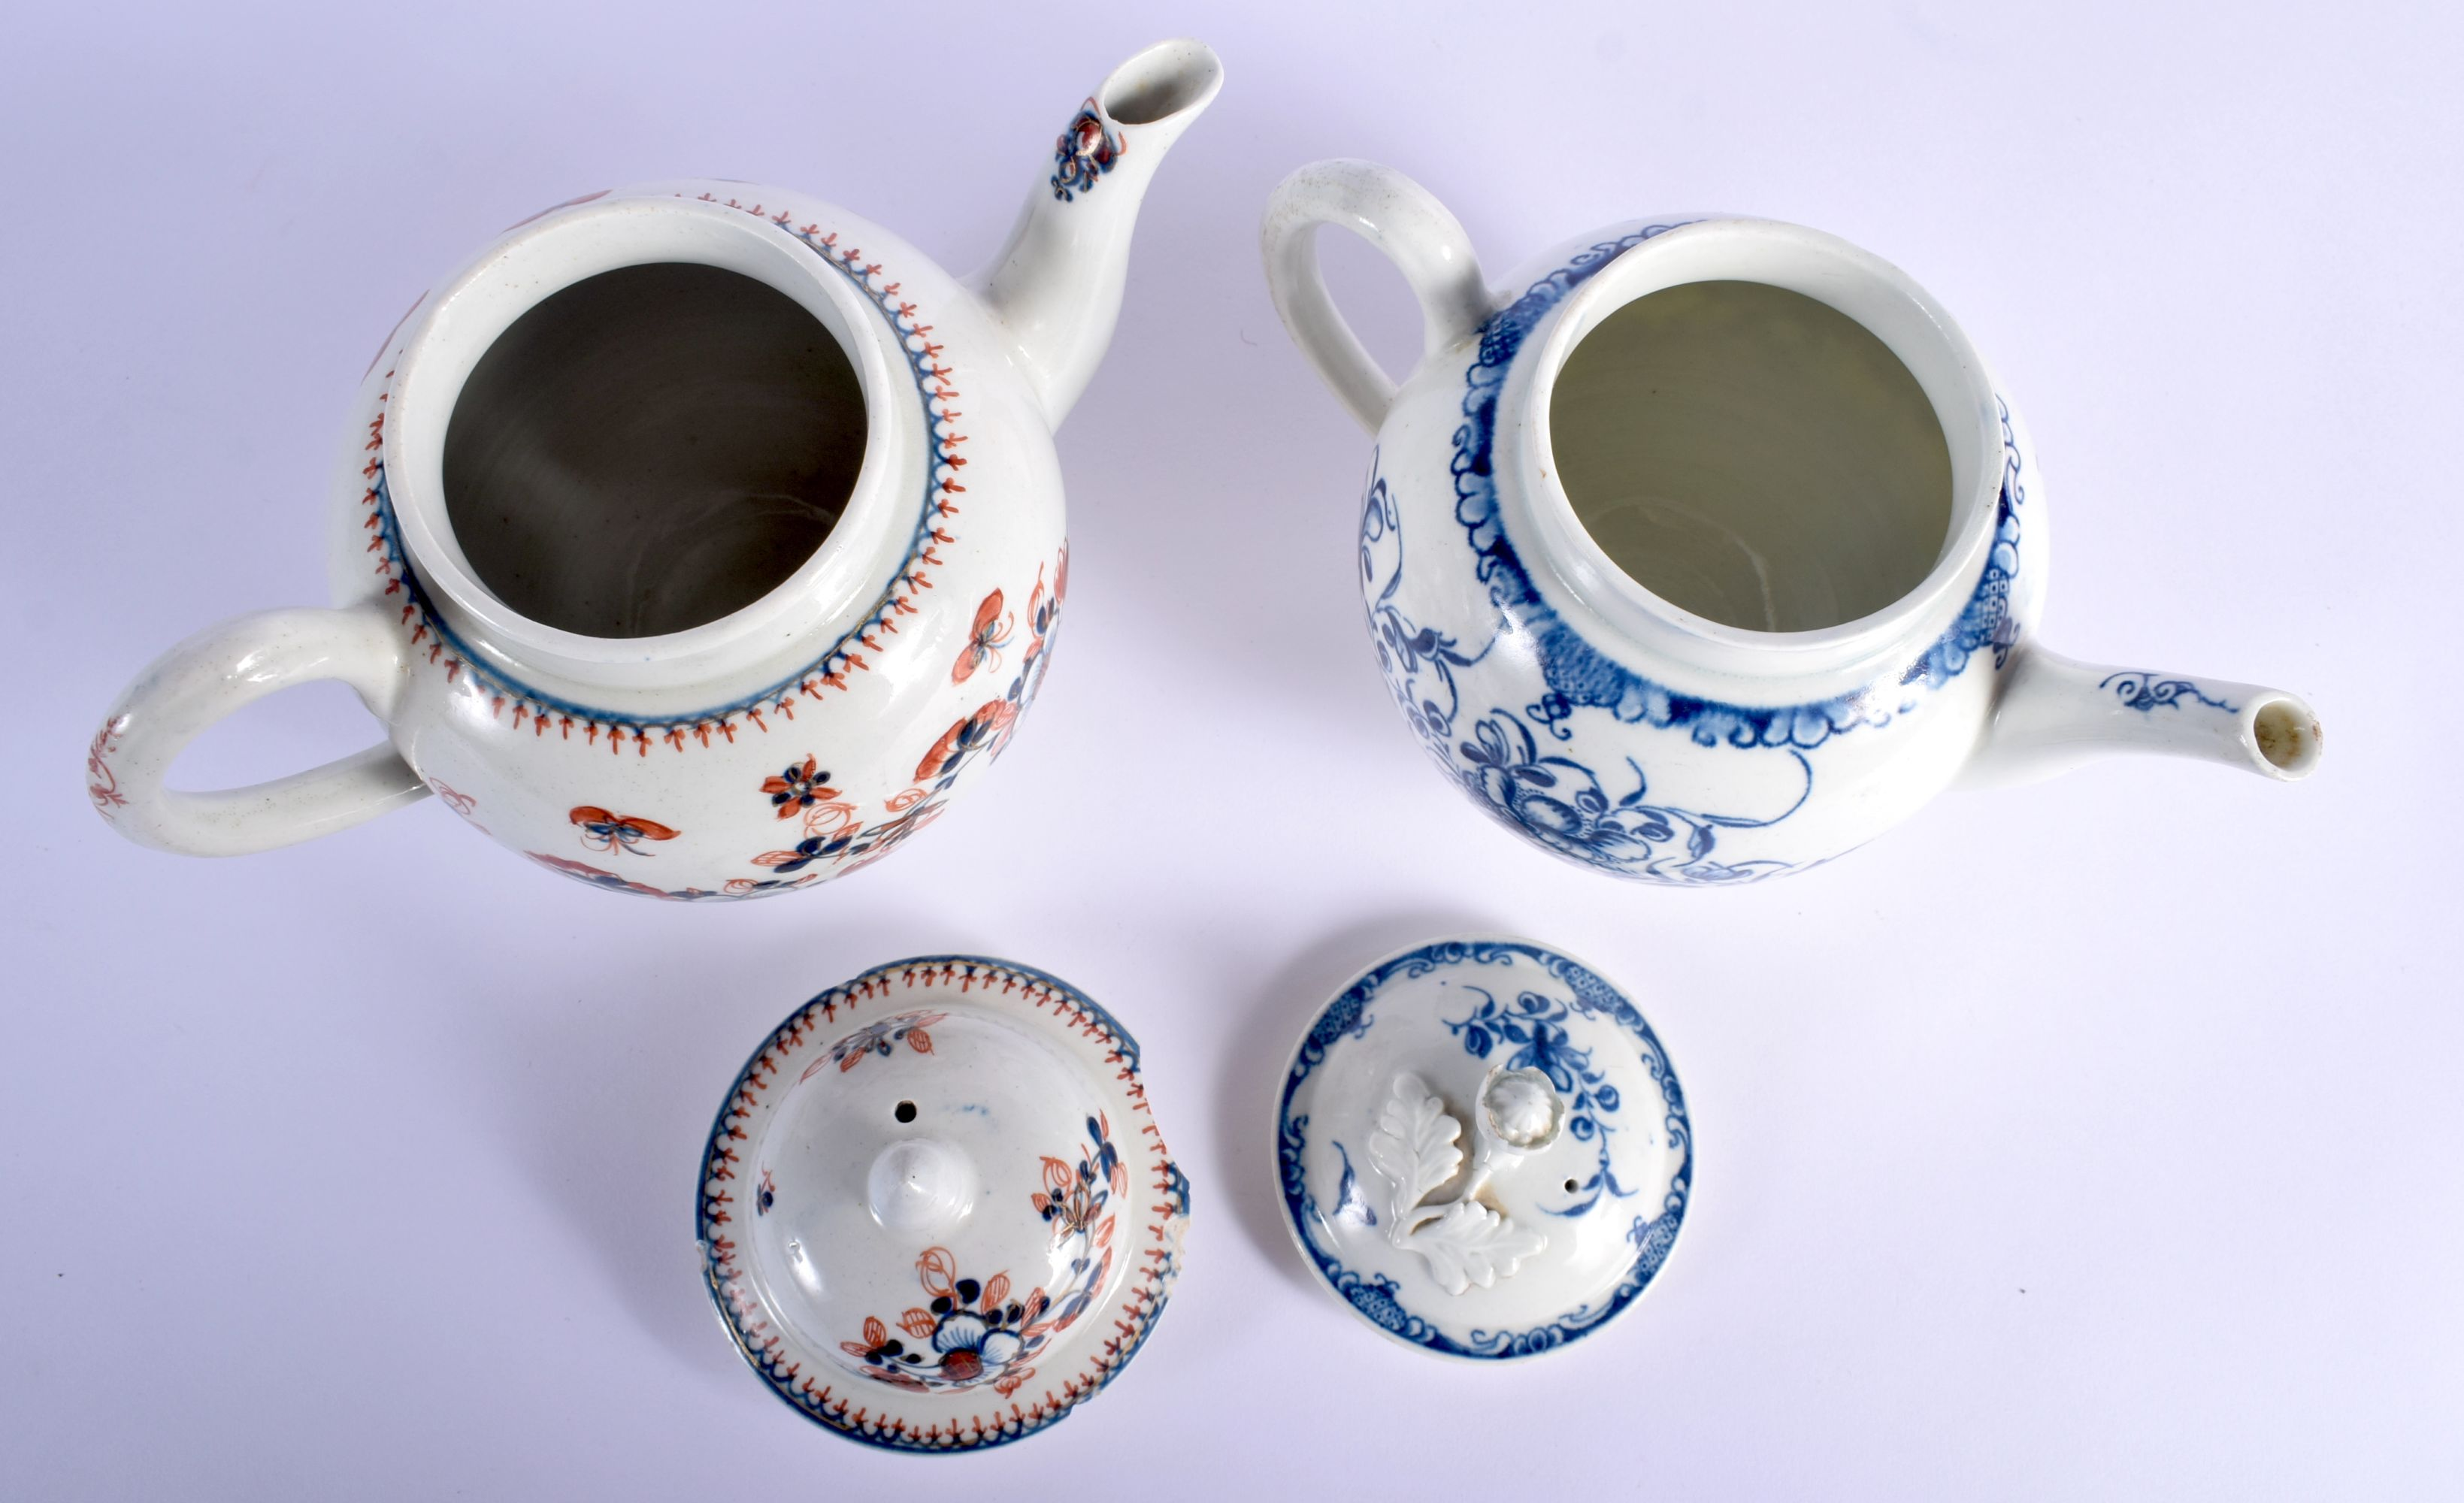 AN 18TH CENTURY WORCESTER MANSFIELD TEAPOT AND COVER together with a Liverpool overglazed teapot and - Image 3 of 4